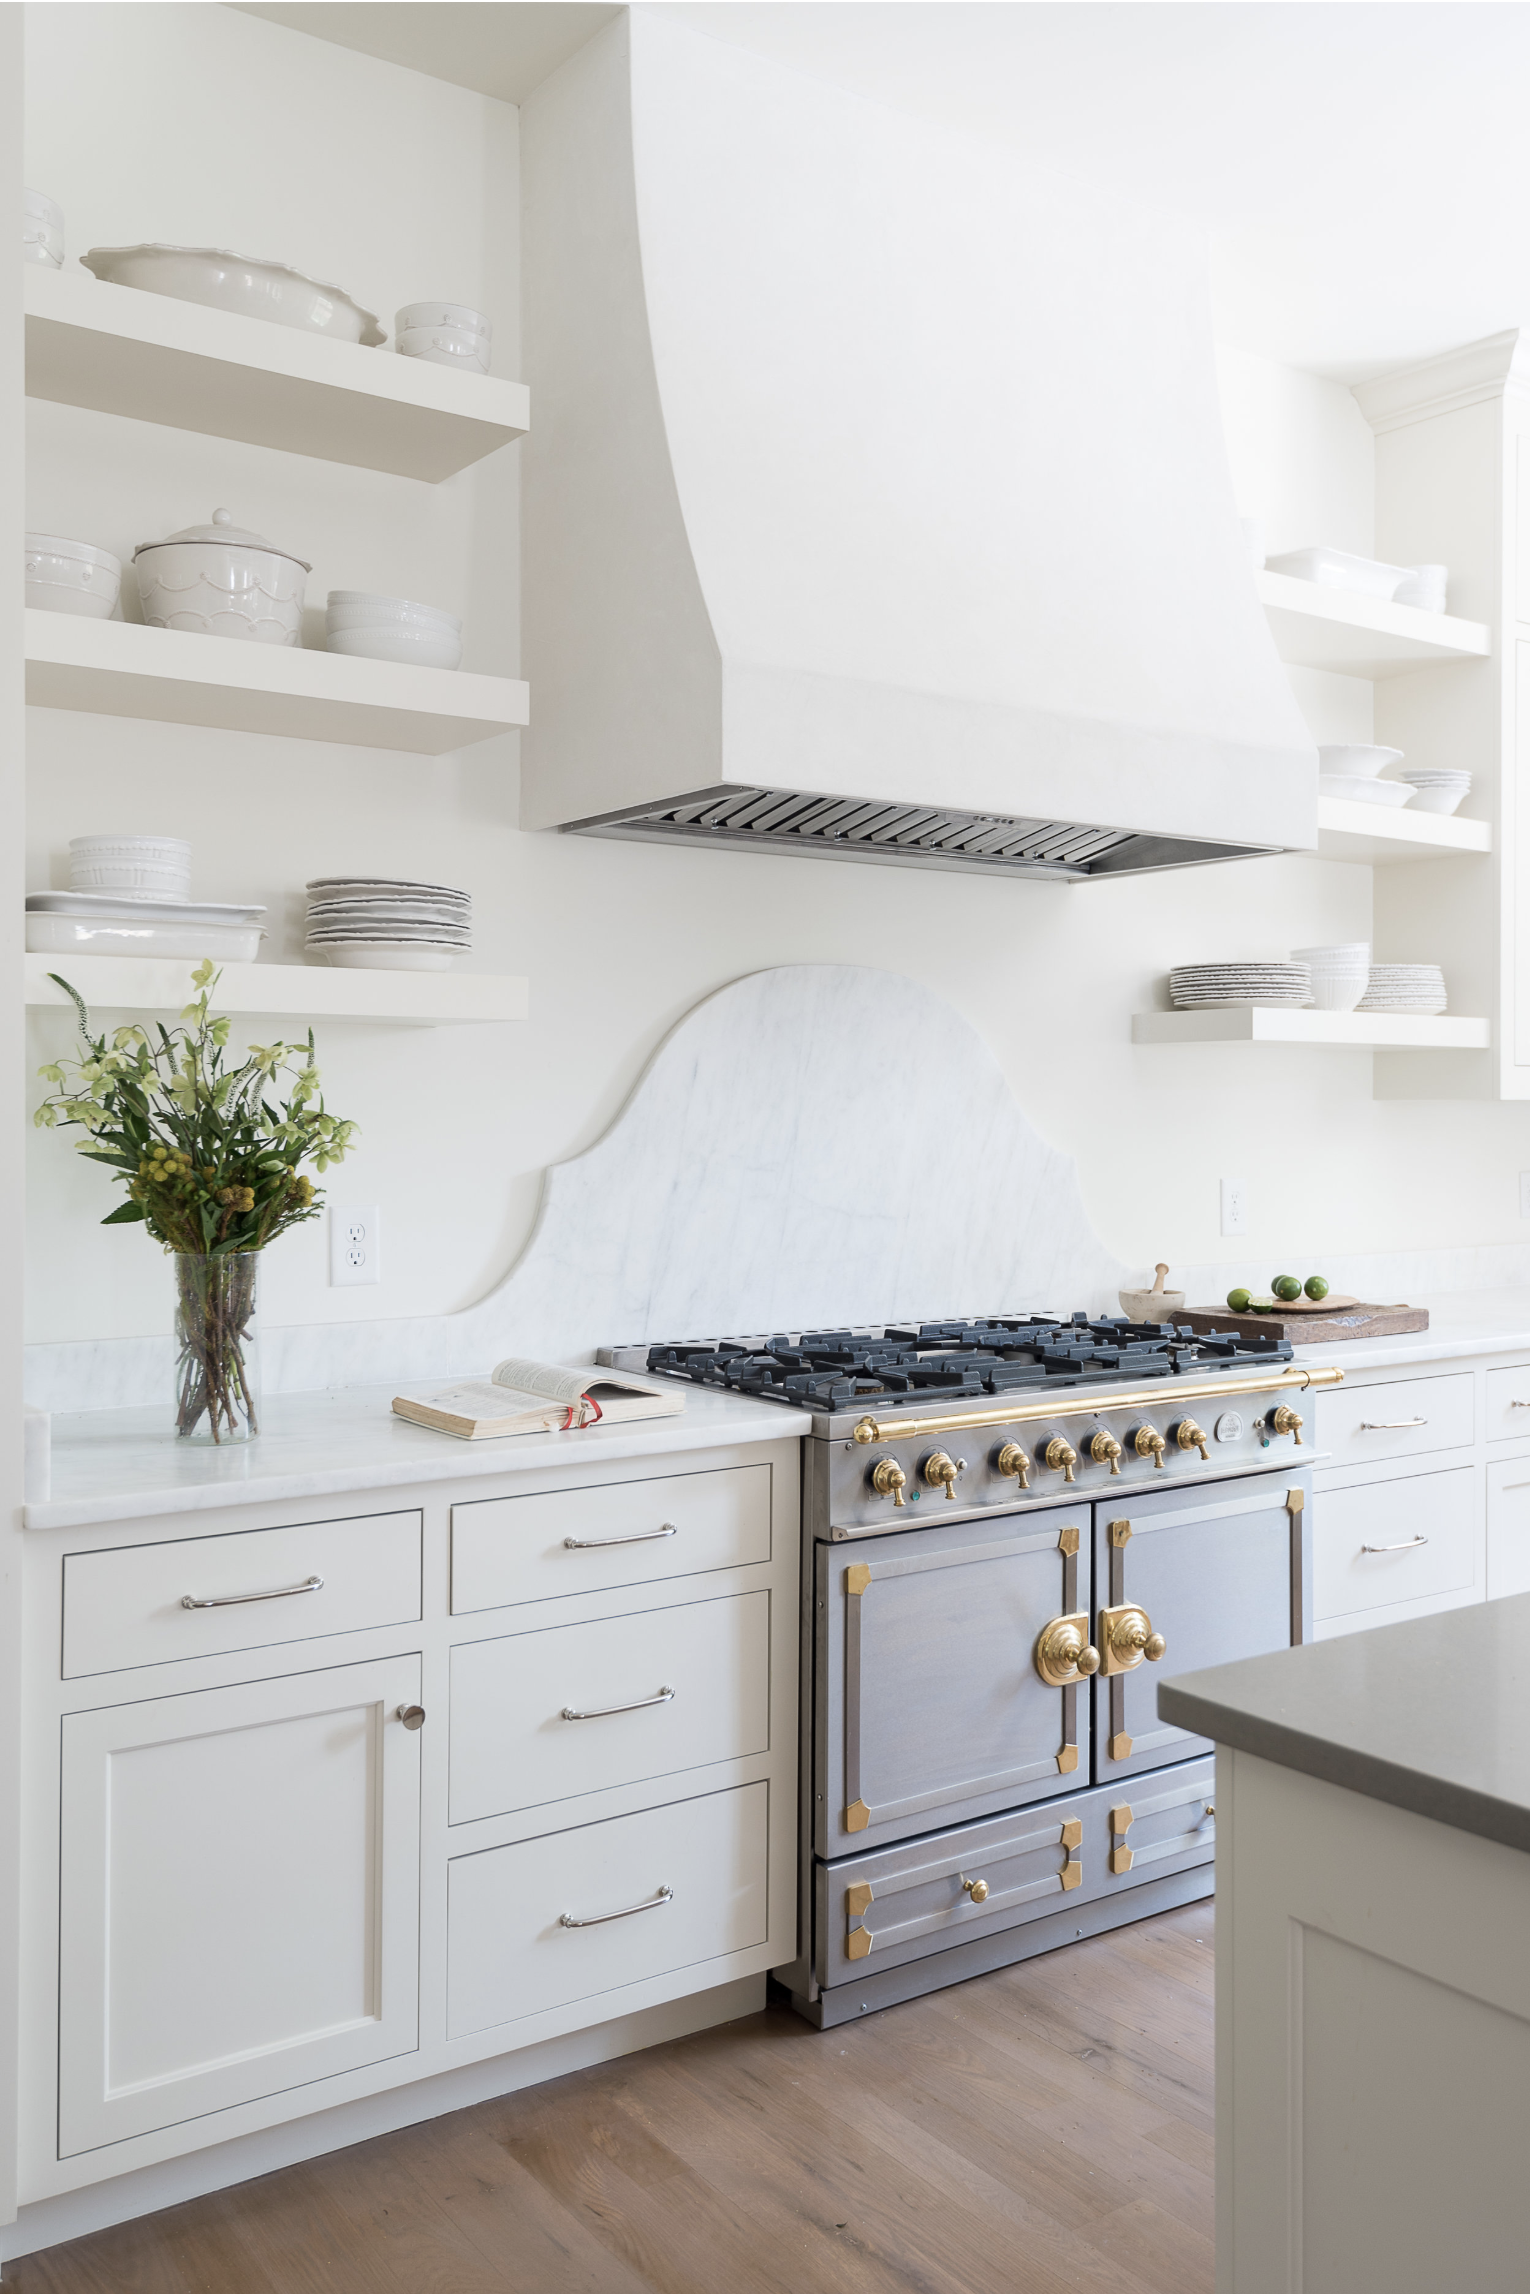 Cool and up to date or heat and homely, the Wren Kitchens